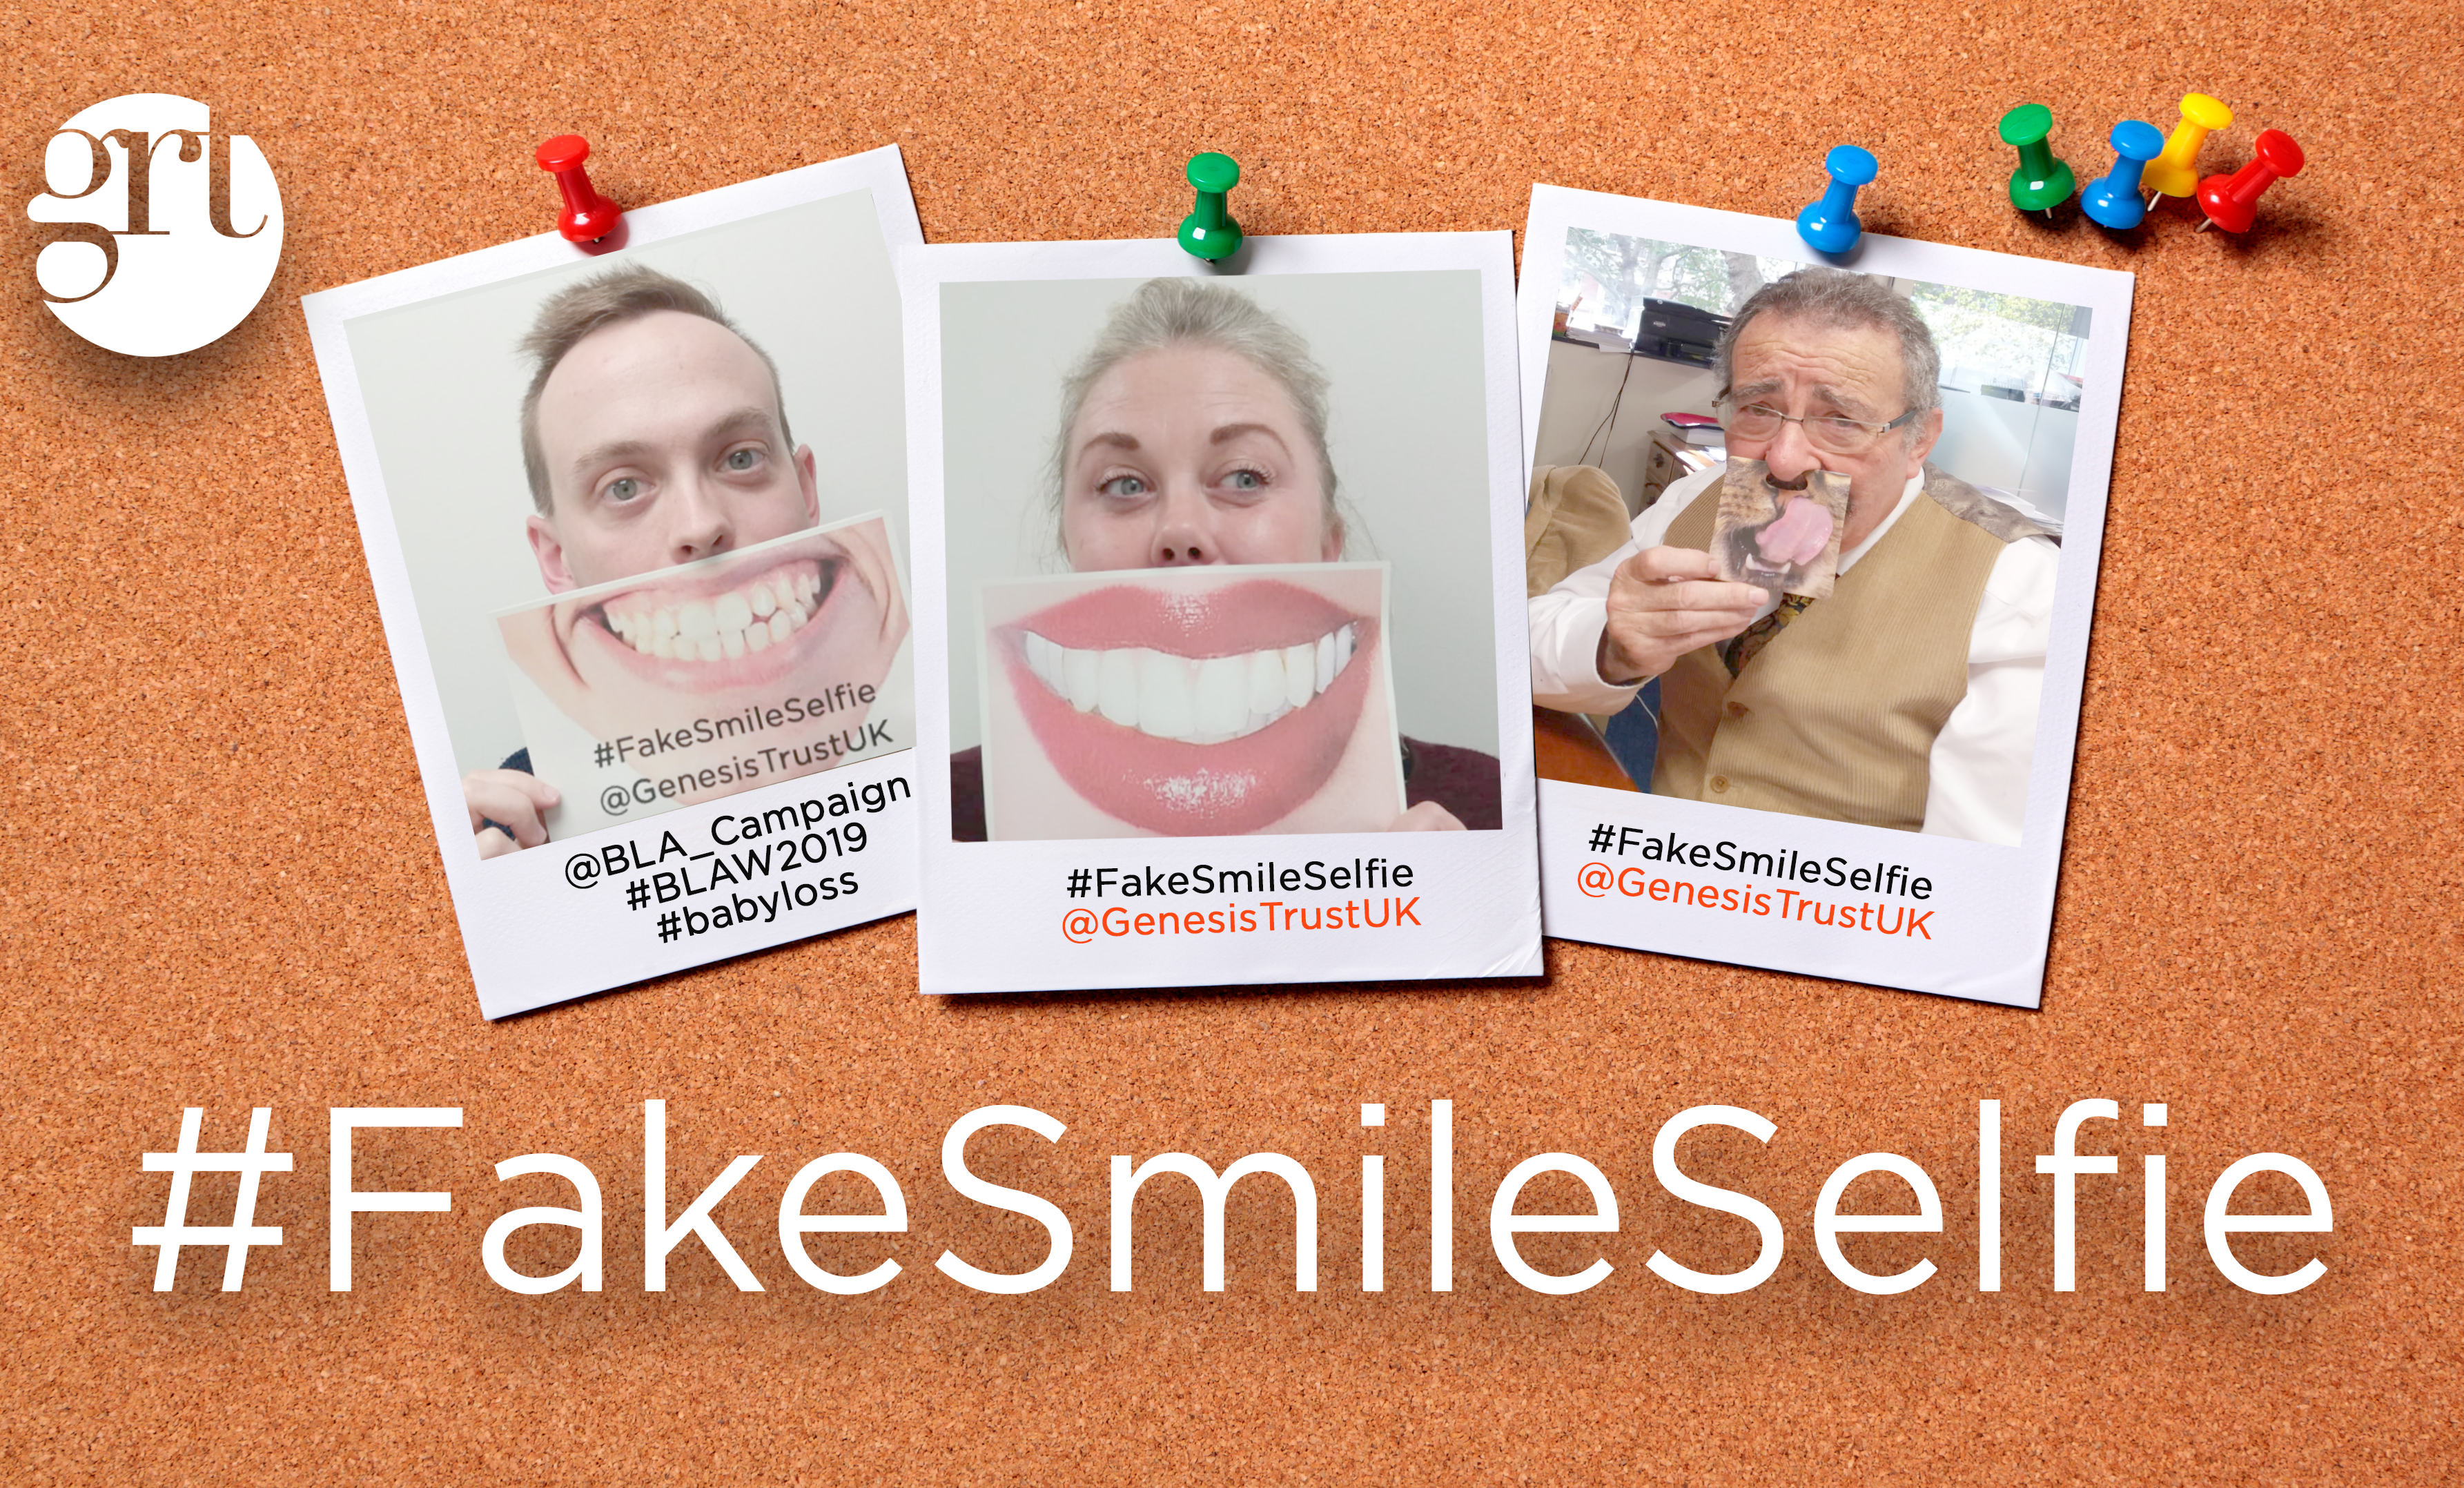 Our #FakeSmileSelfie Campaign